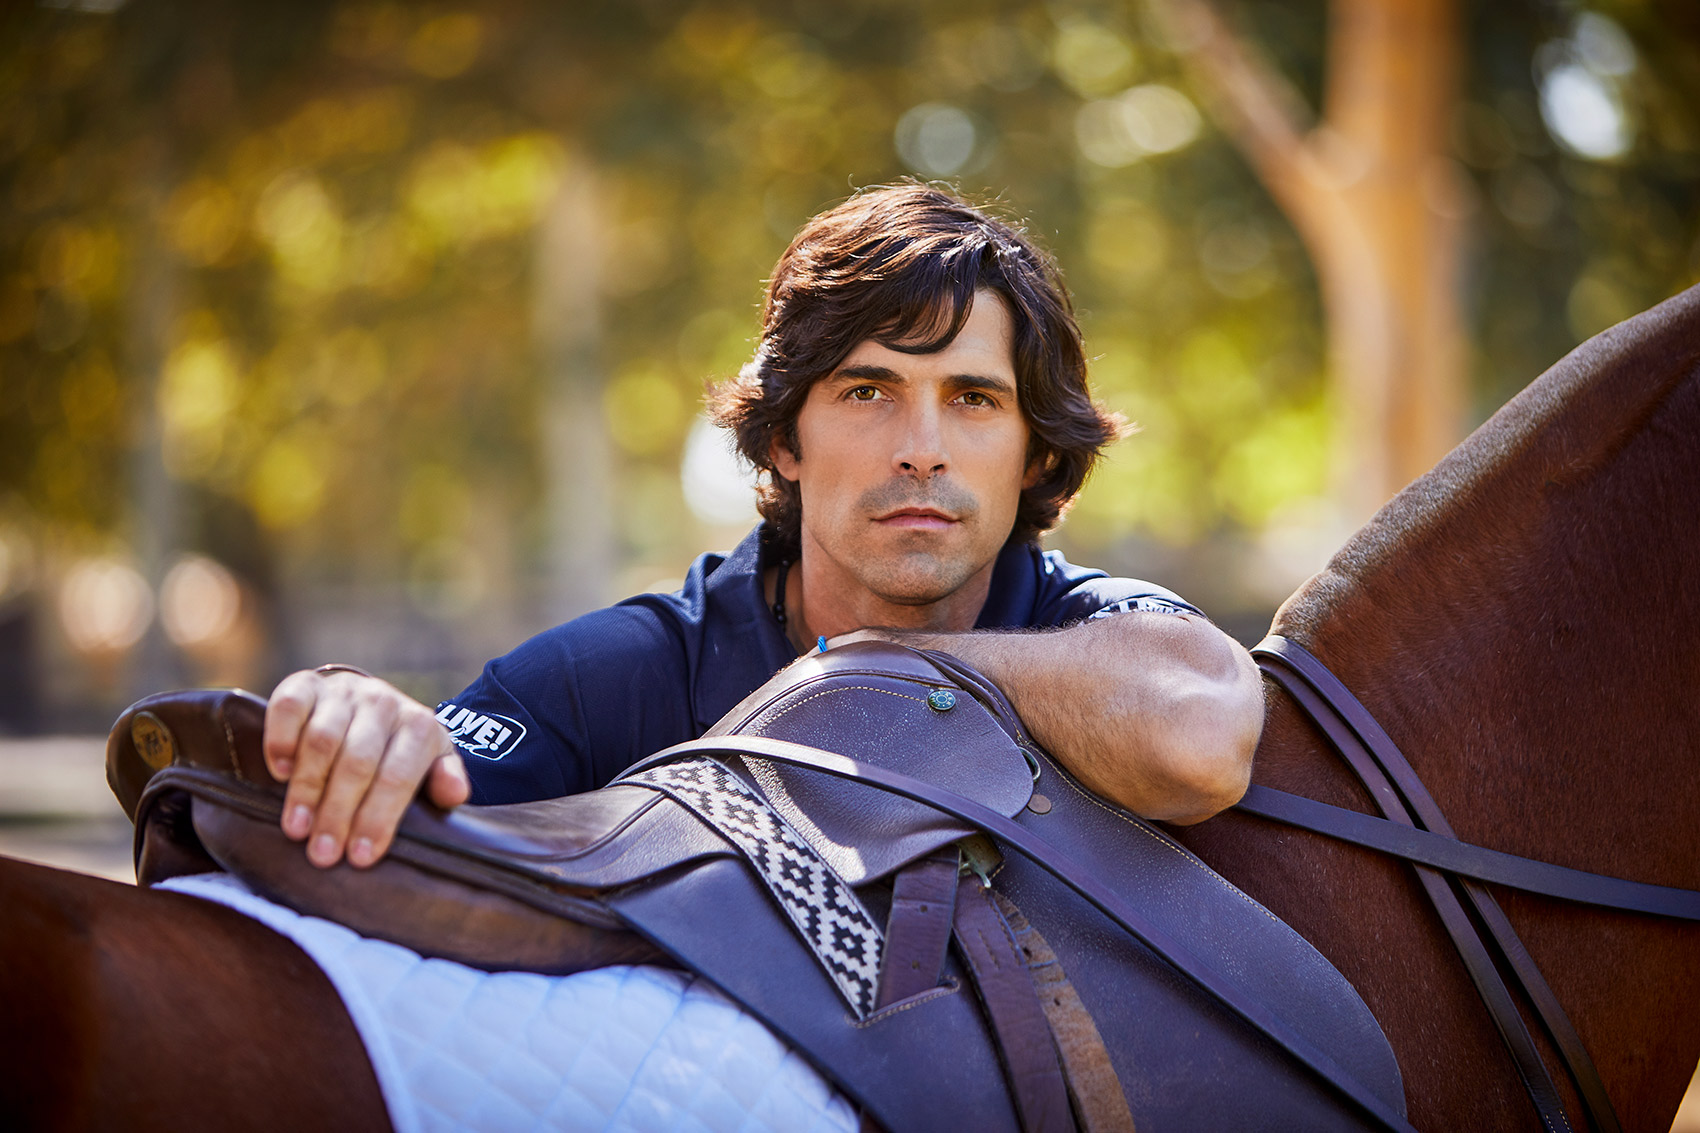 Nacho-Figueras Polo Player for Marie Claire Lifestyle